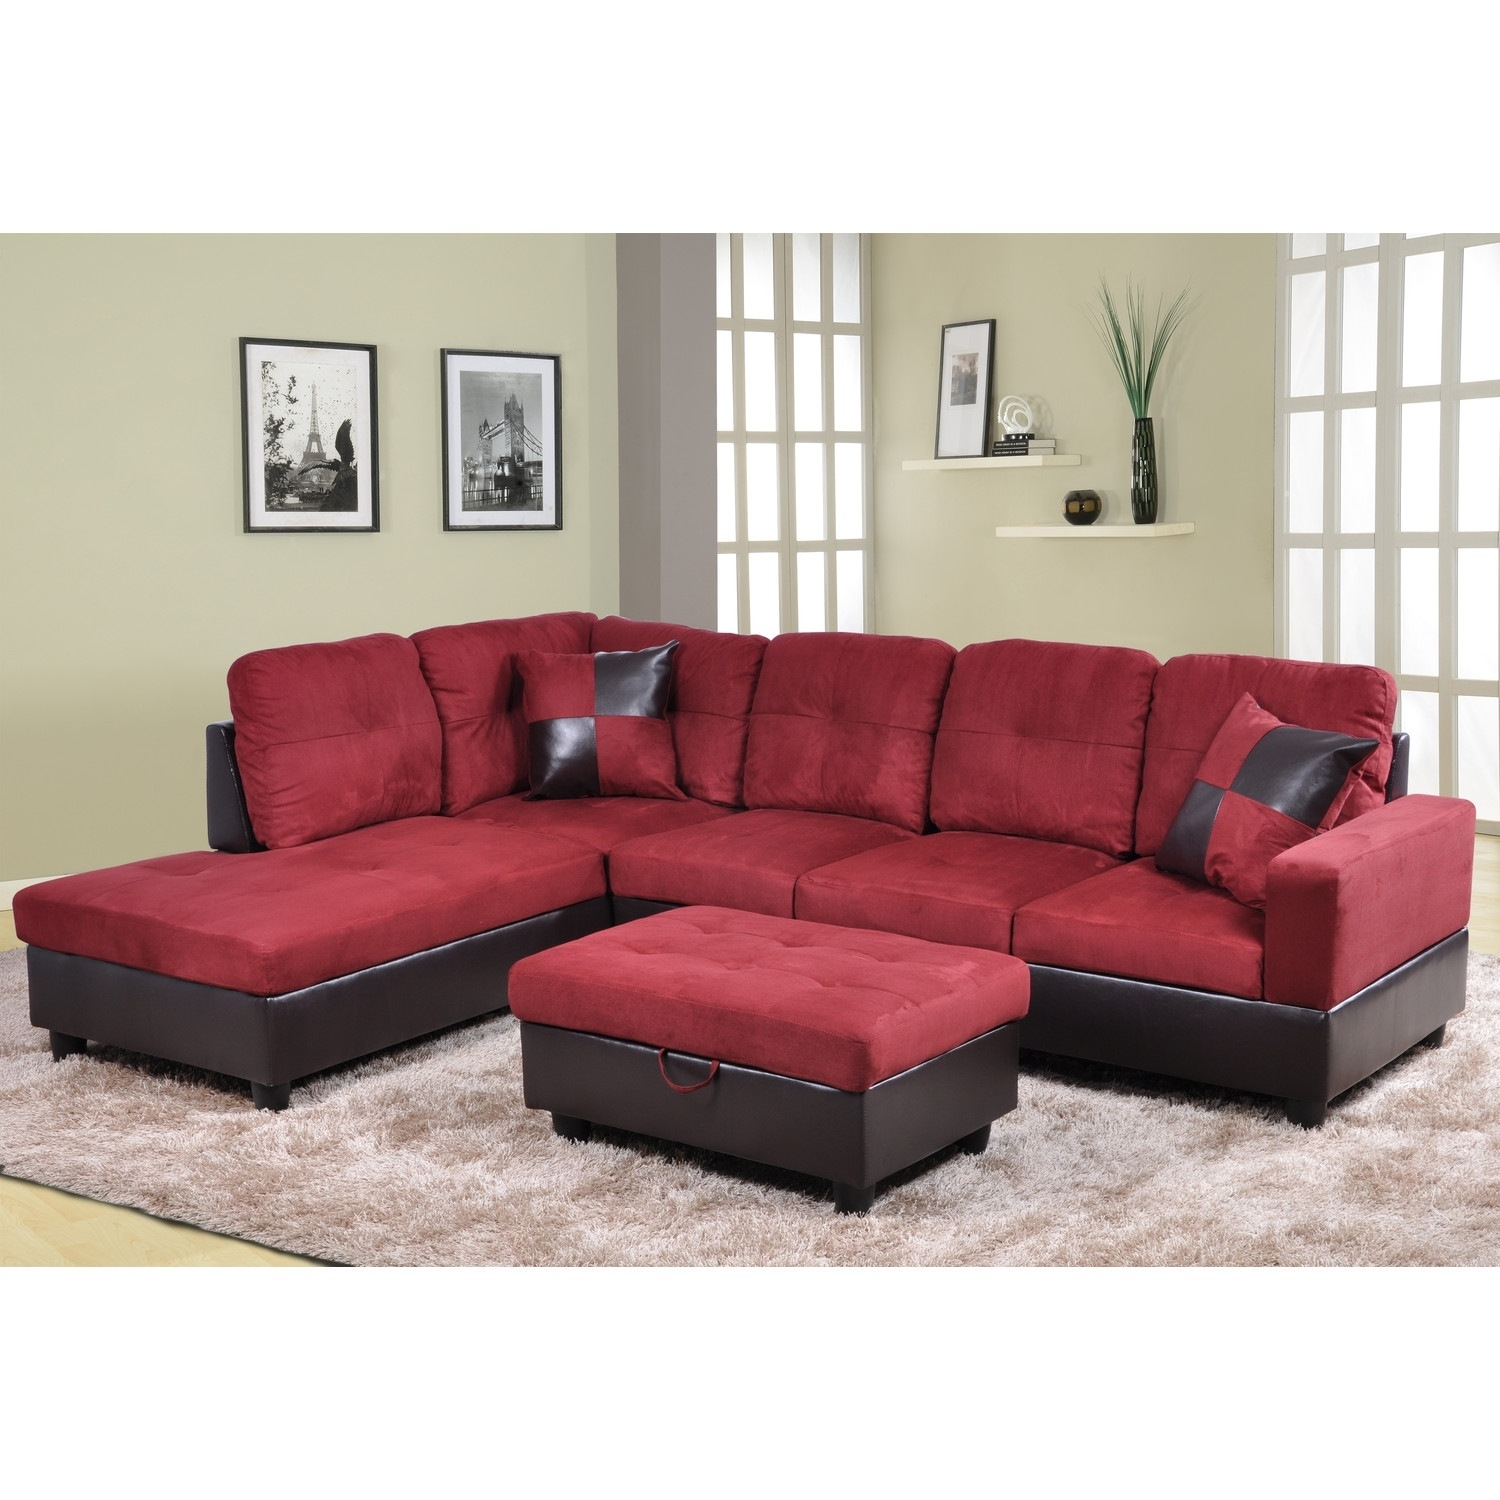 Cheap Sofa For Sale: 2019 Latest Sectional Sofas At Sears